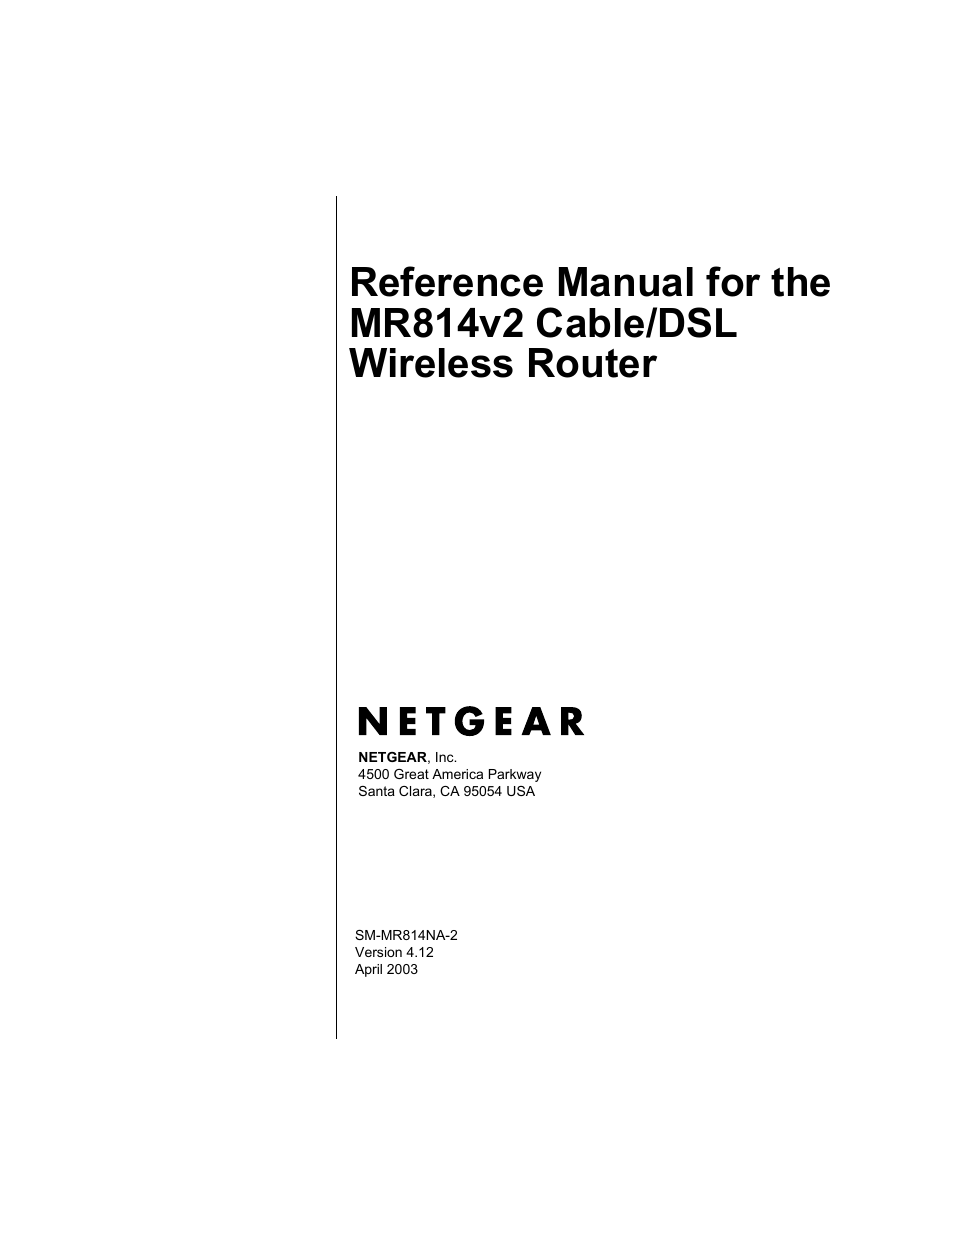 netgear mr814v2 user manual 142 pages rh manualsdir com netgear mr814v2 firmware upgrade download netgear wireless router mr814v2 manual